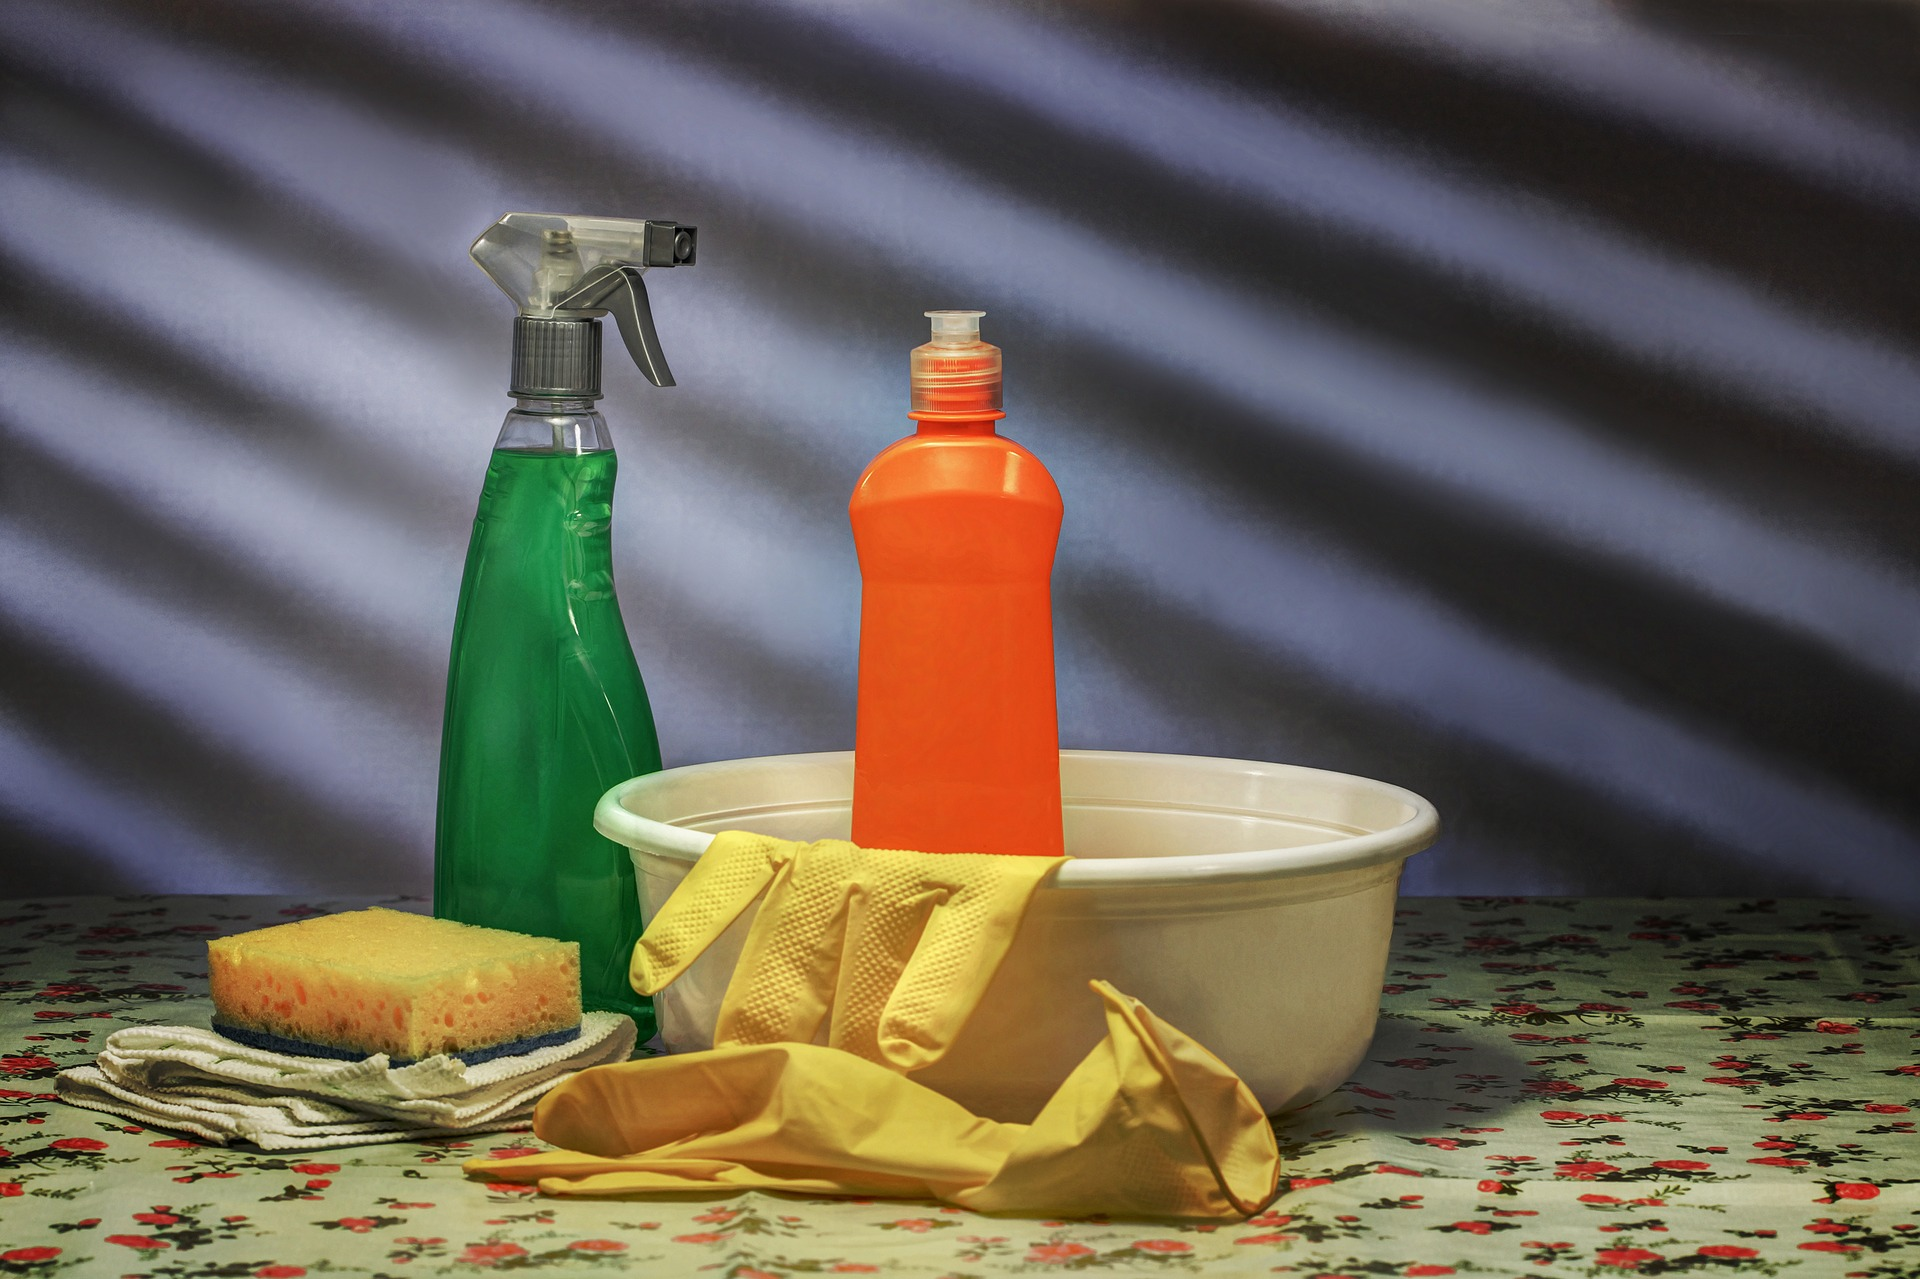 how to get rid of toxins in home environment